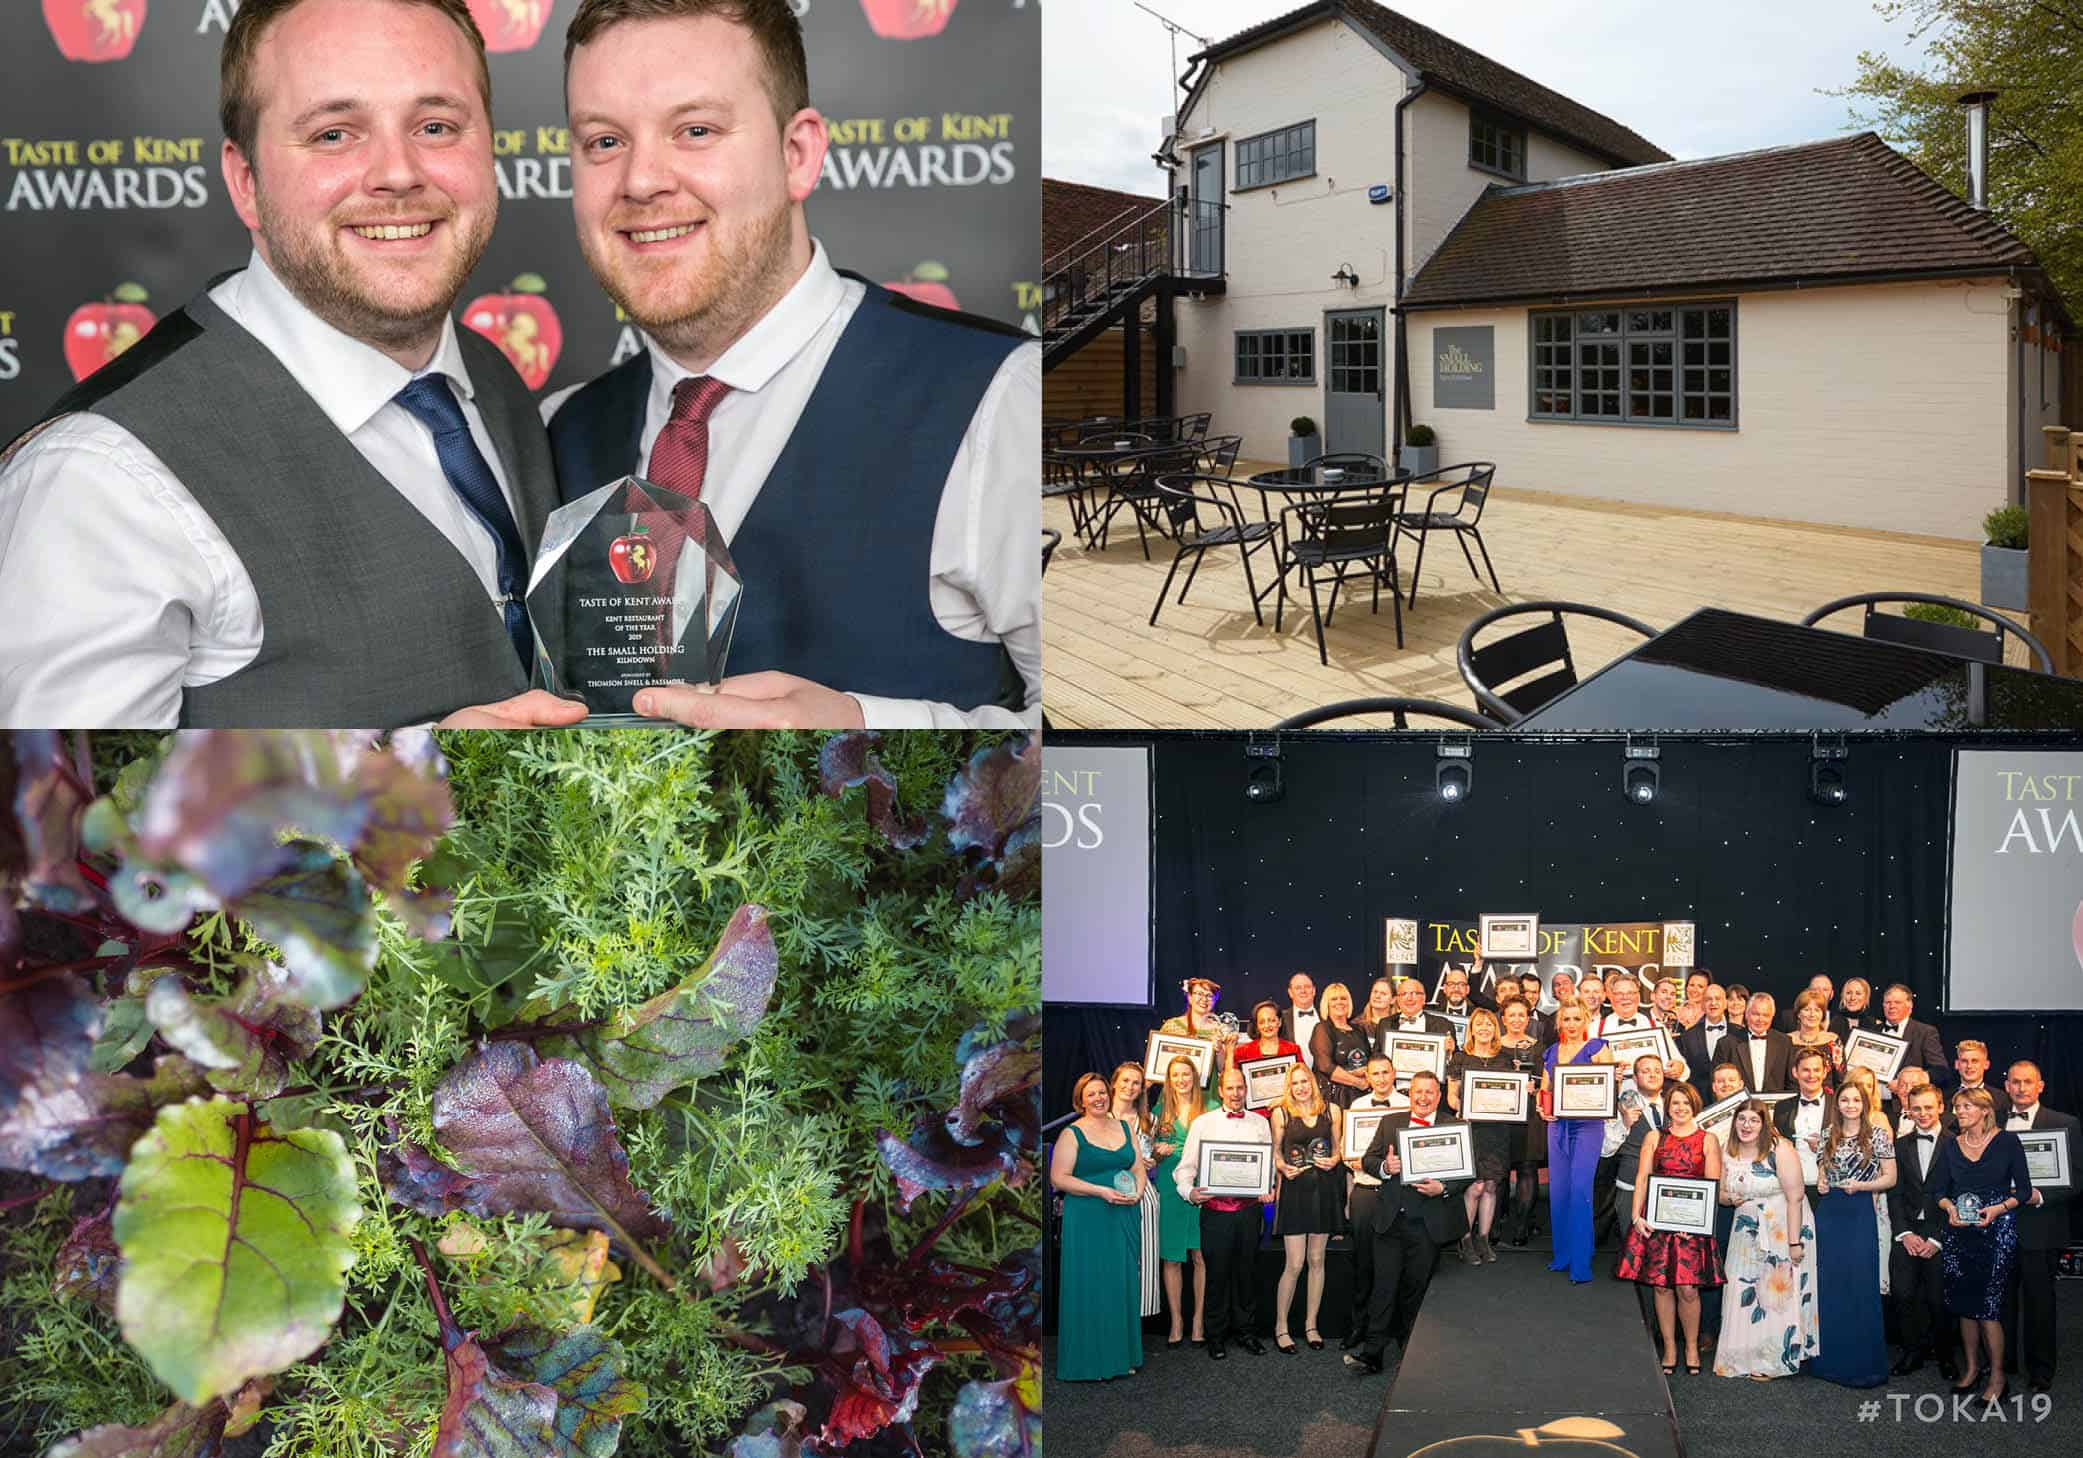 Will Devlin and Matt Devlin at the Taste of Kent Awards 2019; The Small Holding in Kilndown; produce on the Small Holding farm; winners of the Taste of Kent Awards 2019